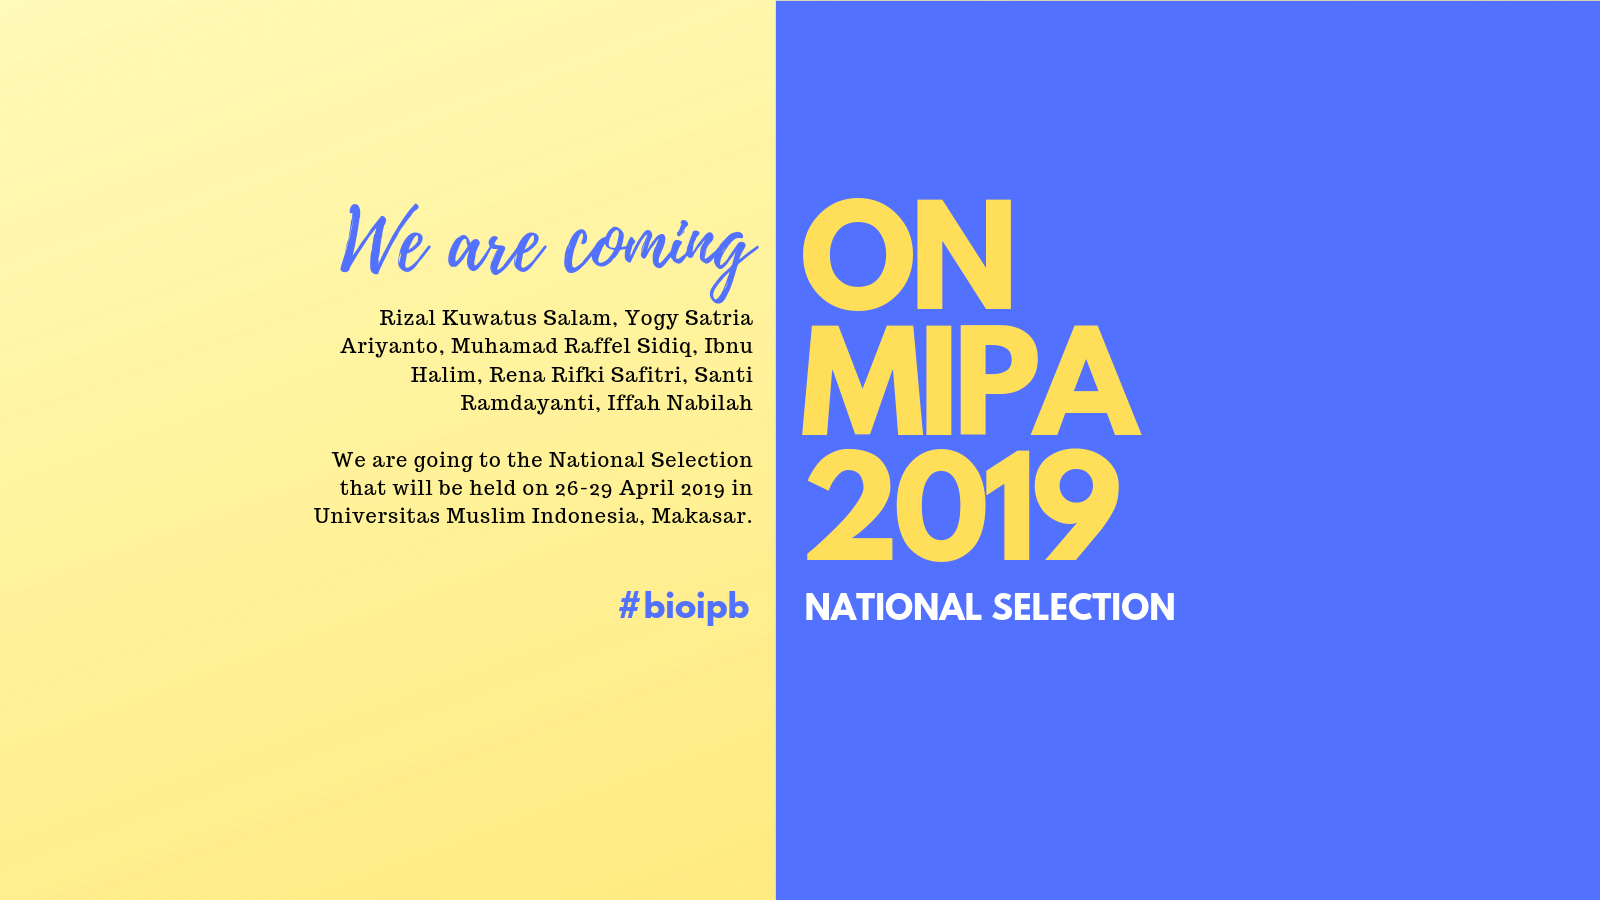 National Selection of ONMIPA 2019